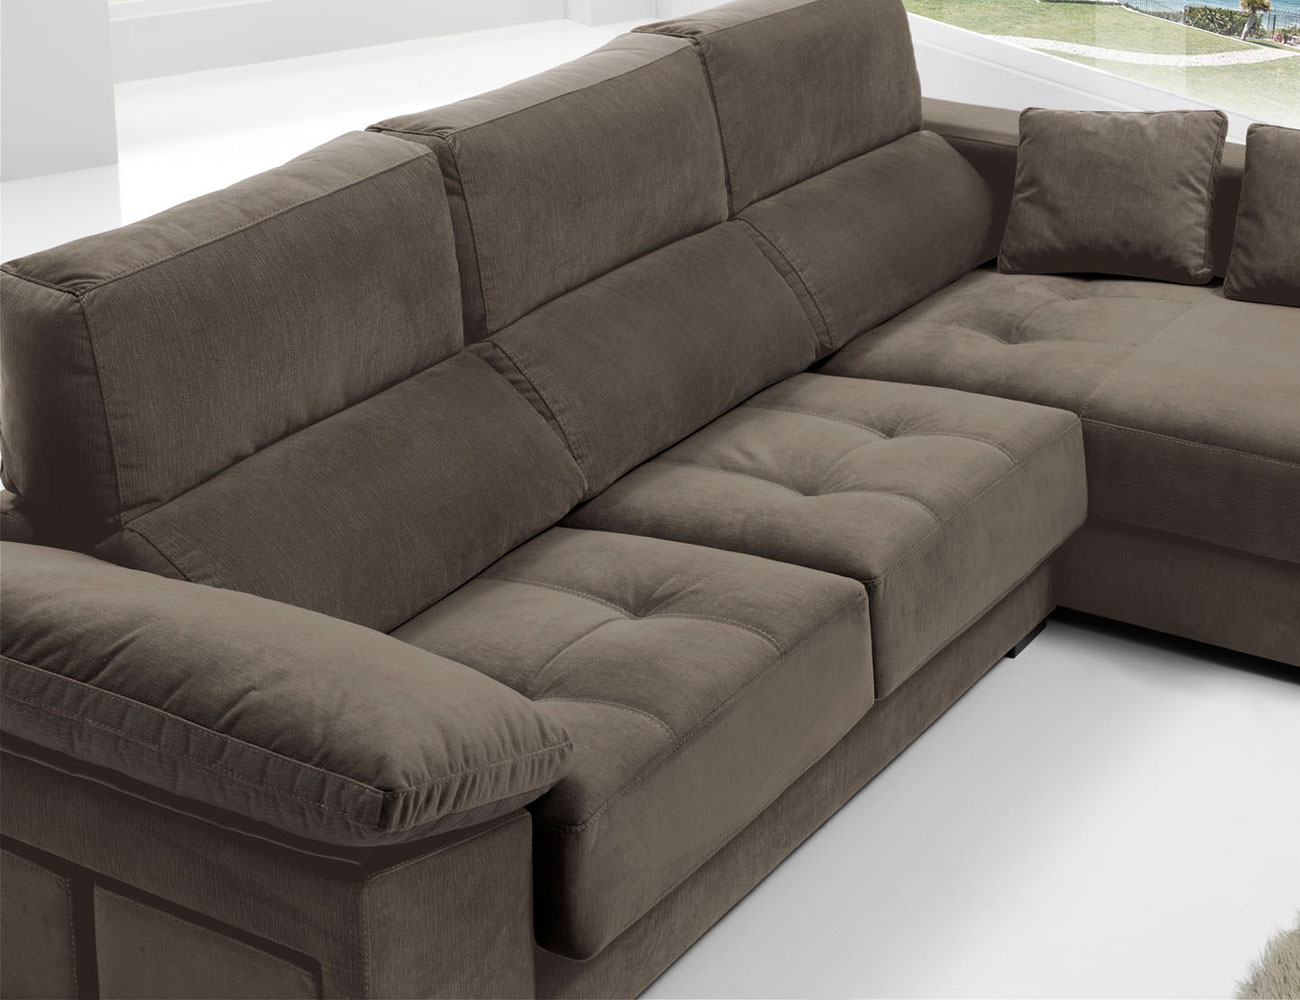 Sofa chaiselongue anti manchas bering pouf 274